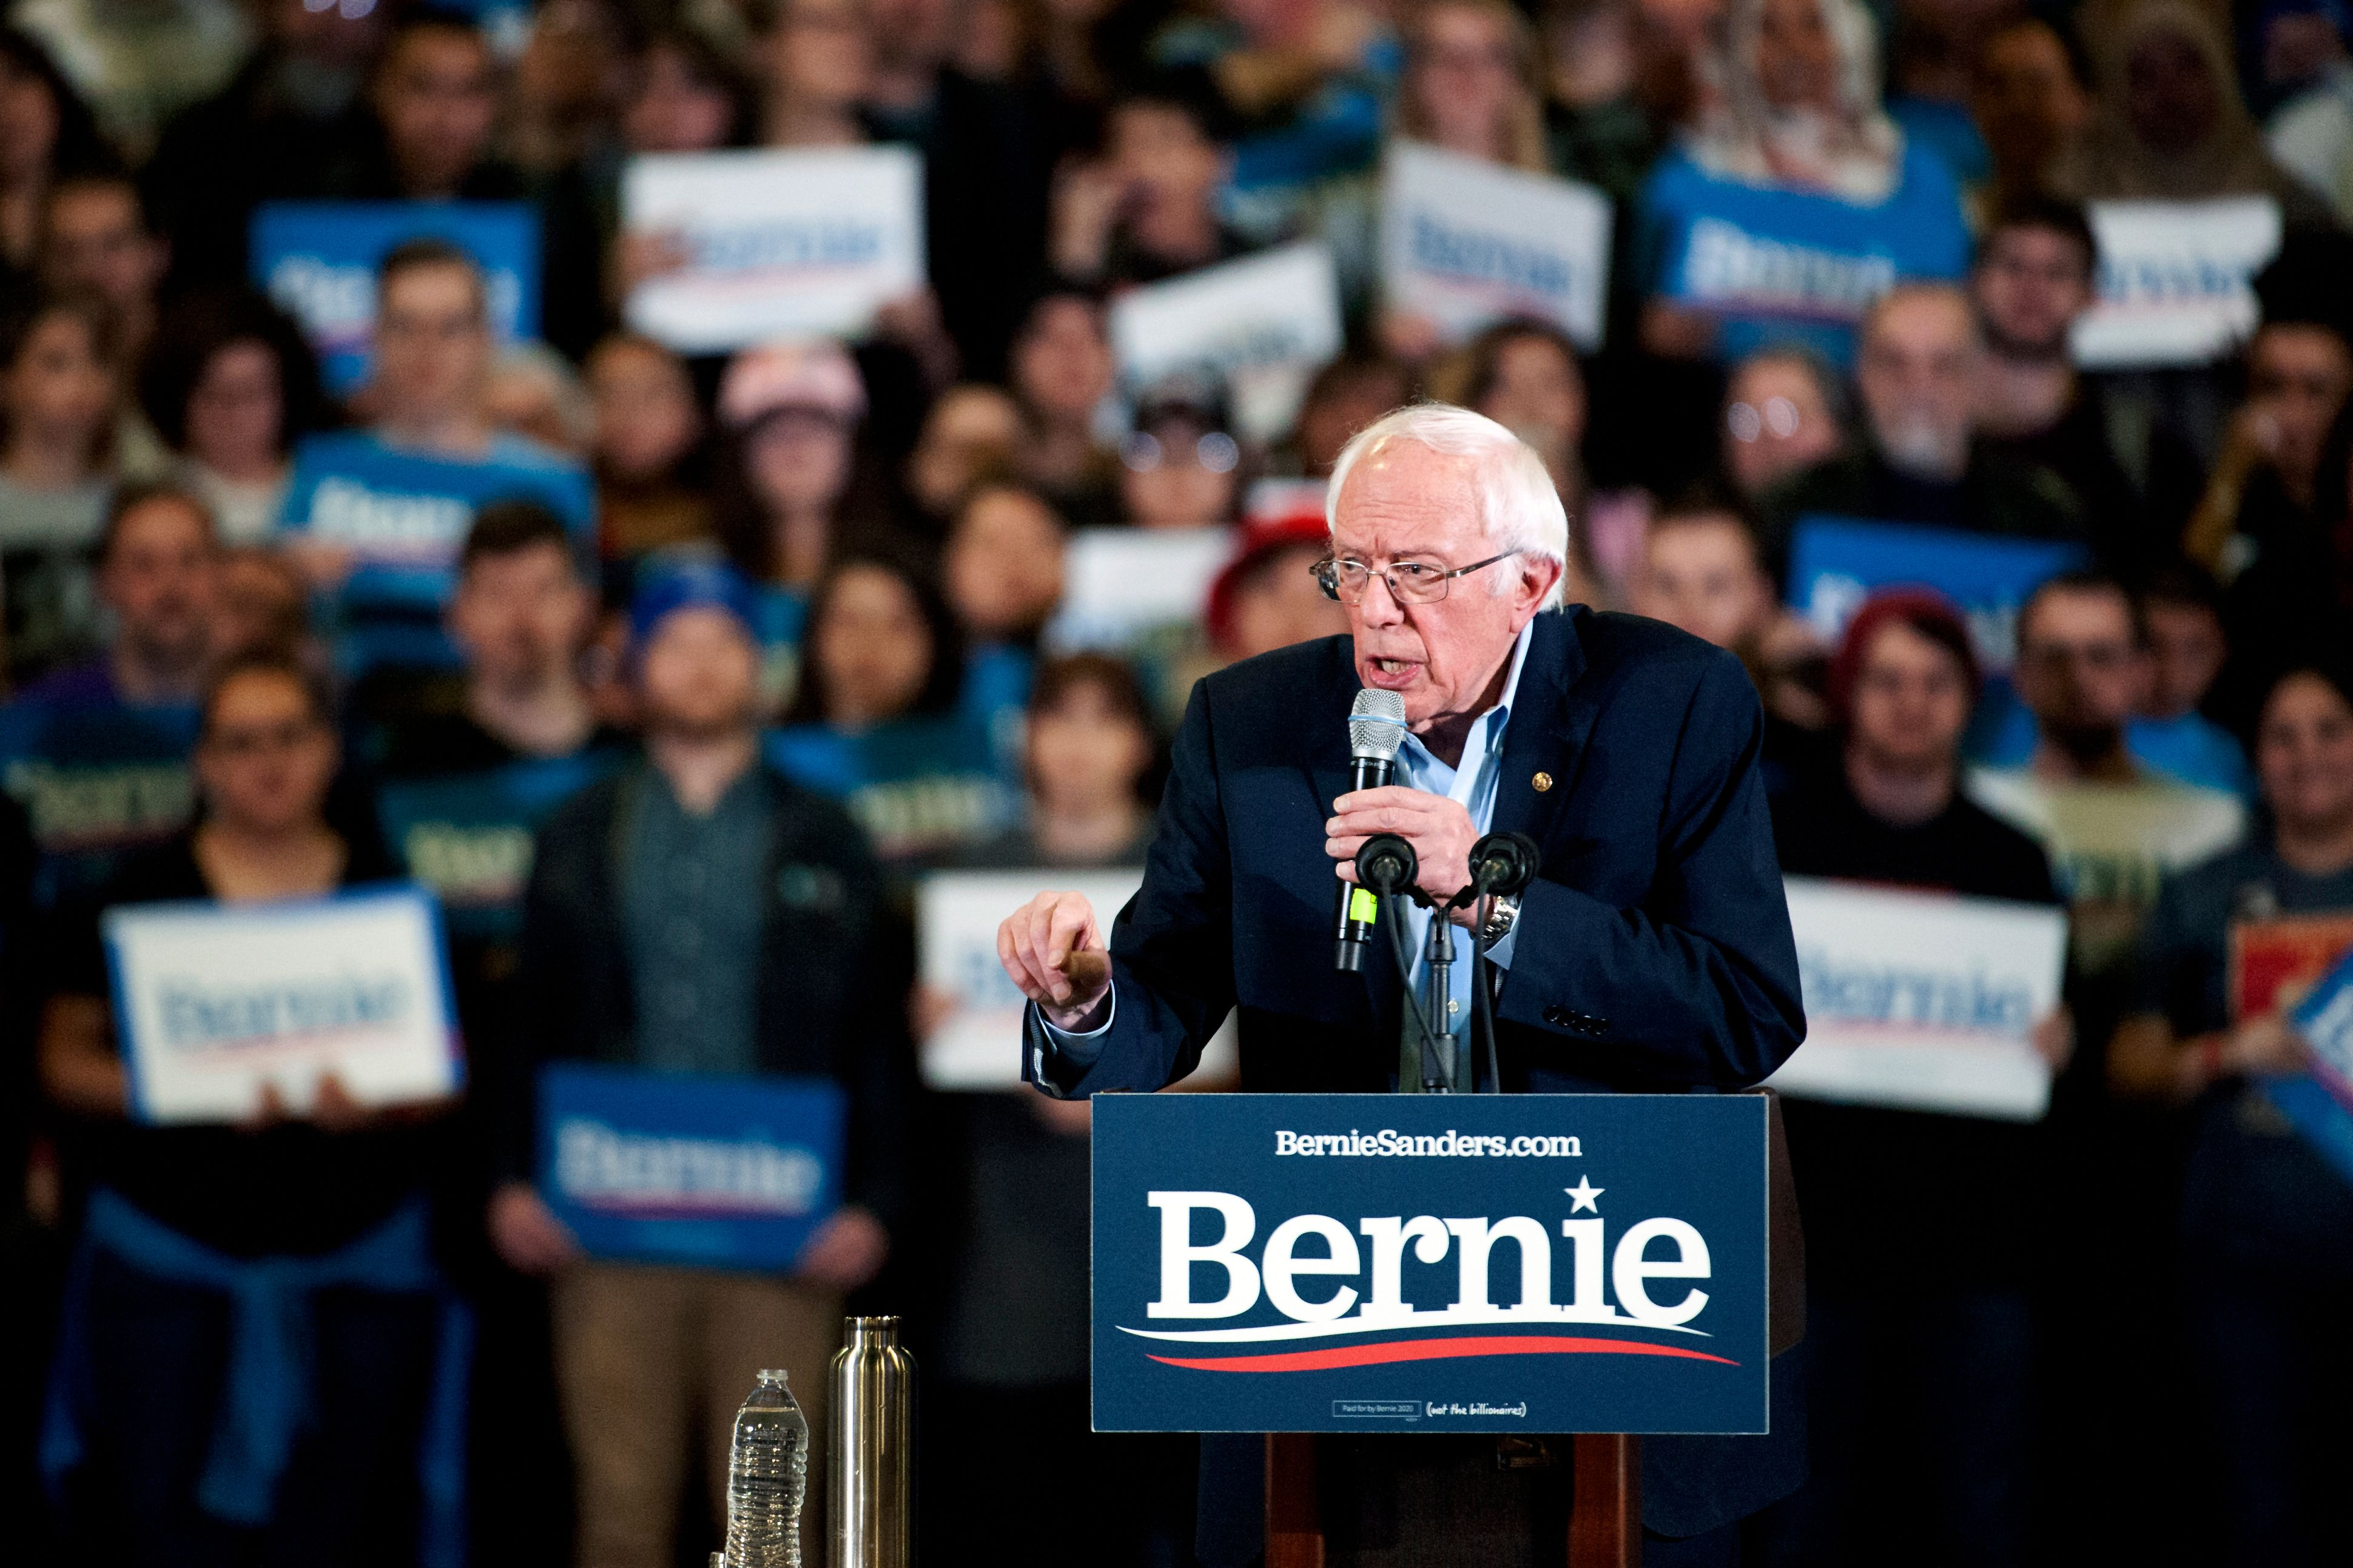 Democratic presidential candidate Vermont Senator Bernie Sanders addresses supporters during a campaign rally in Denver, Colorado on February 16, 2020. (Photo by Jason Connolly / AFP)